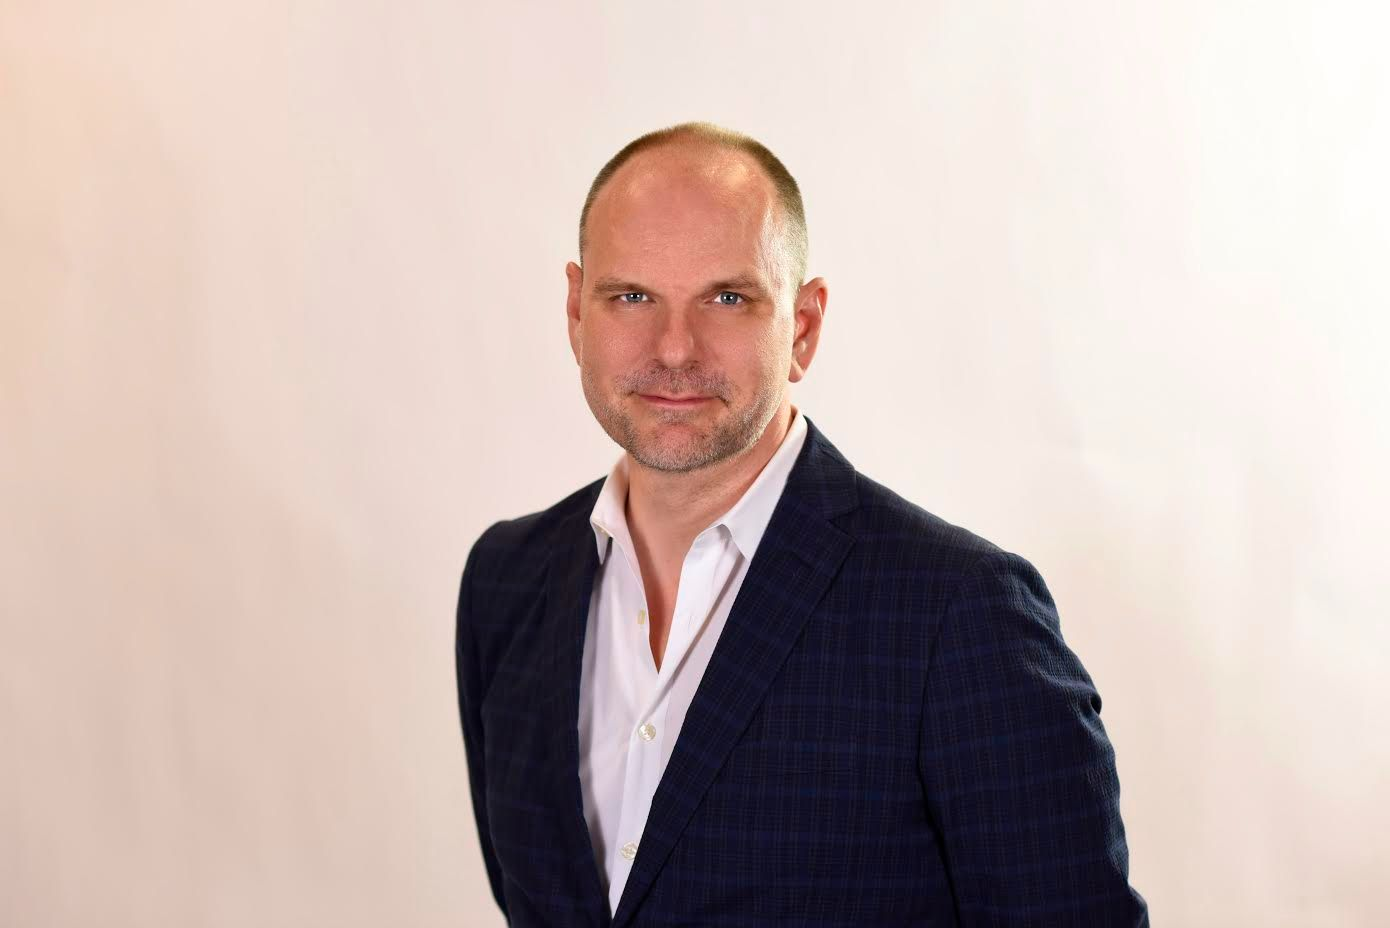 Havas Group Appoints Peter Mears as COO of Media Business